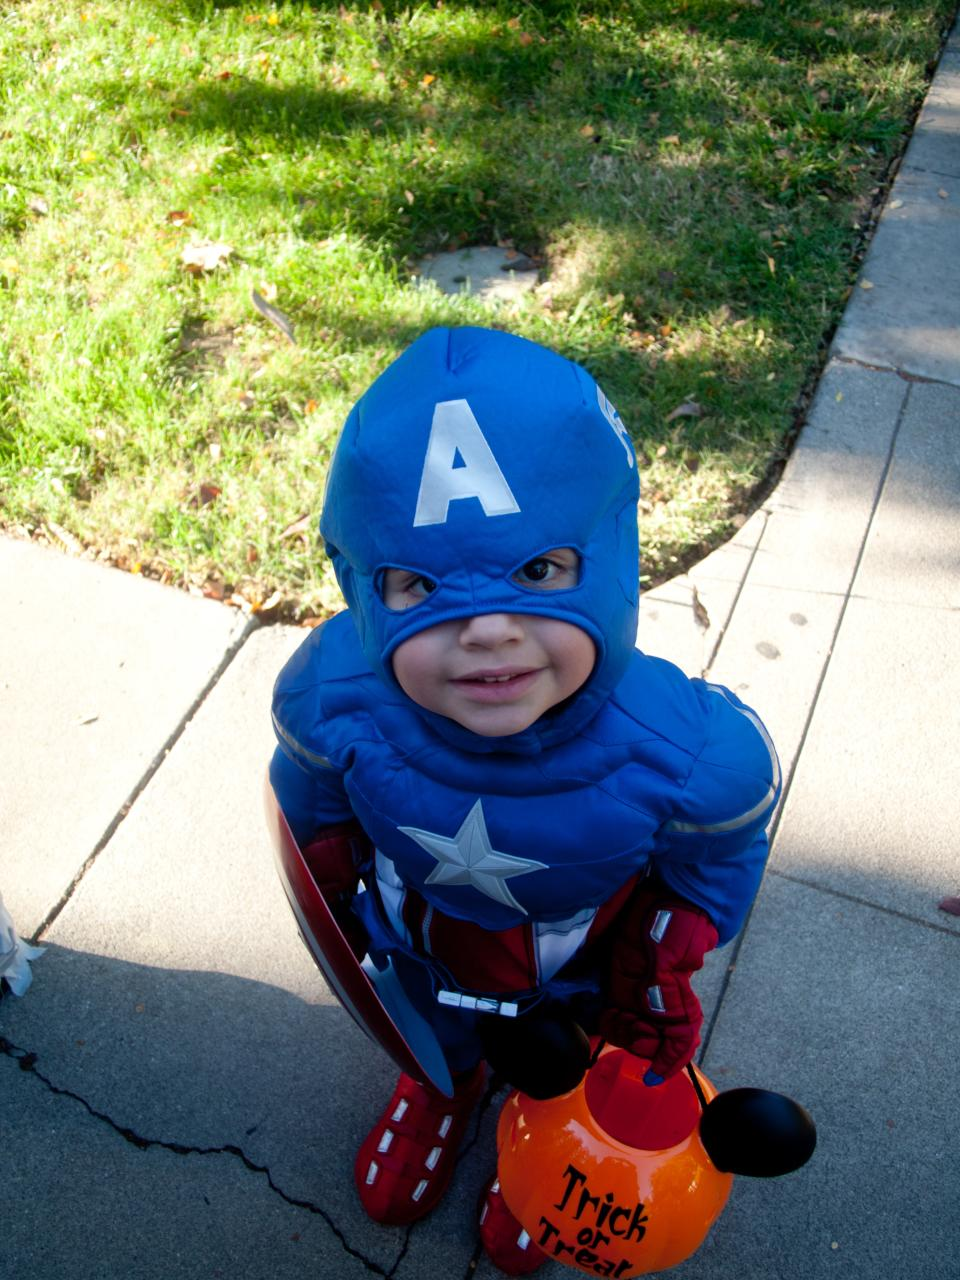 """""""Trick or Treat, citizen!"""" Photo by Patrick Giblin, used under Creative Commons license."""